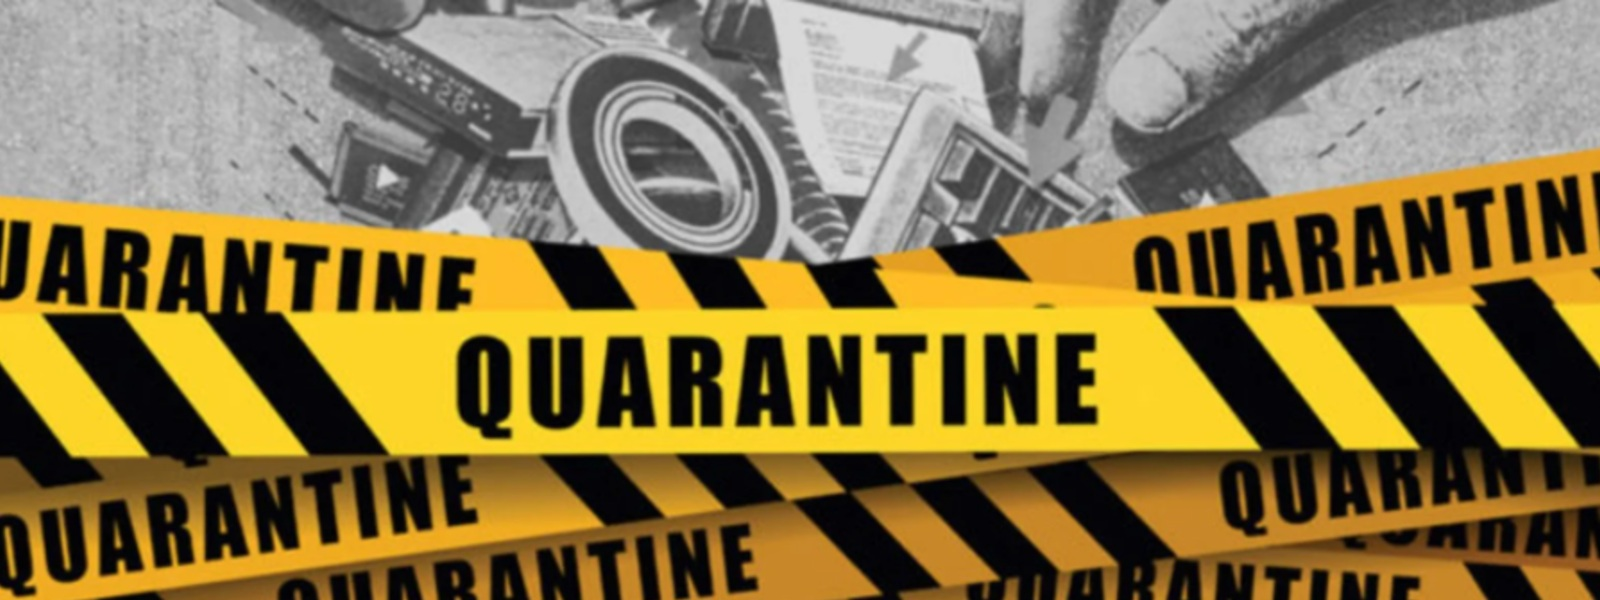 454 people who left the Western Province in Quarantine